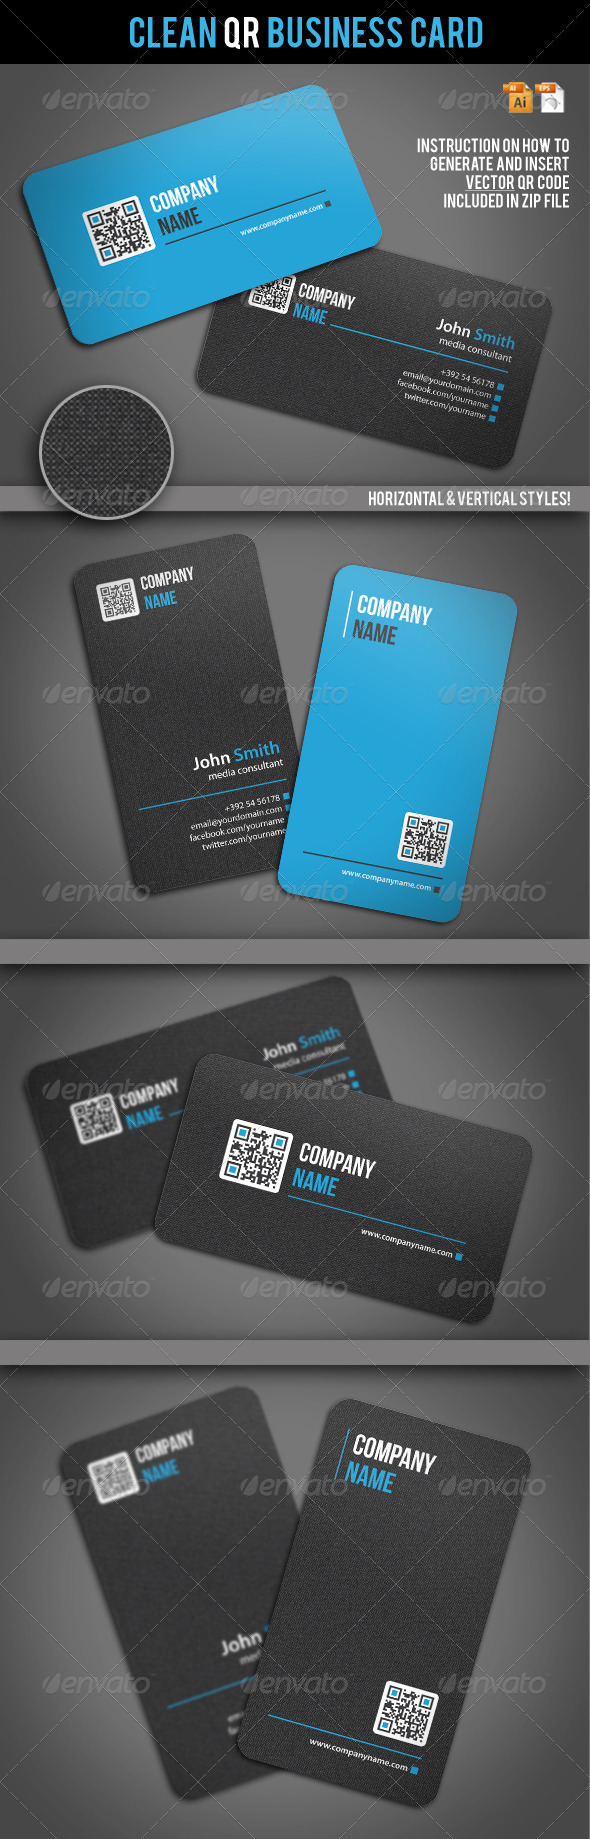 GraphicRiver Clean QR Business Card 2062604